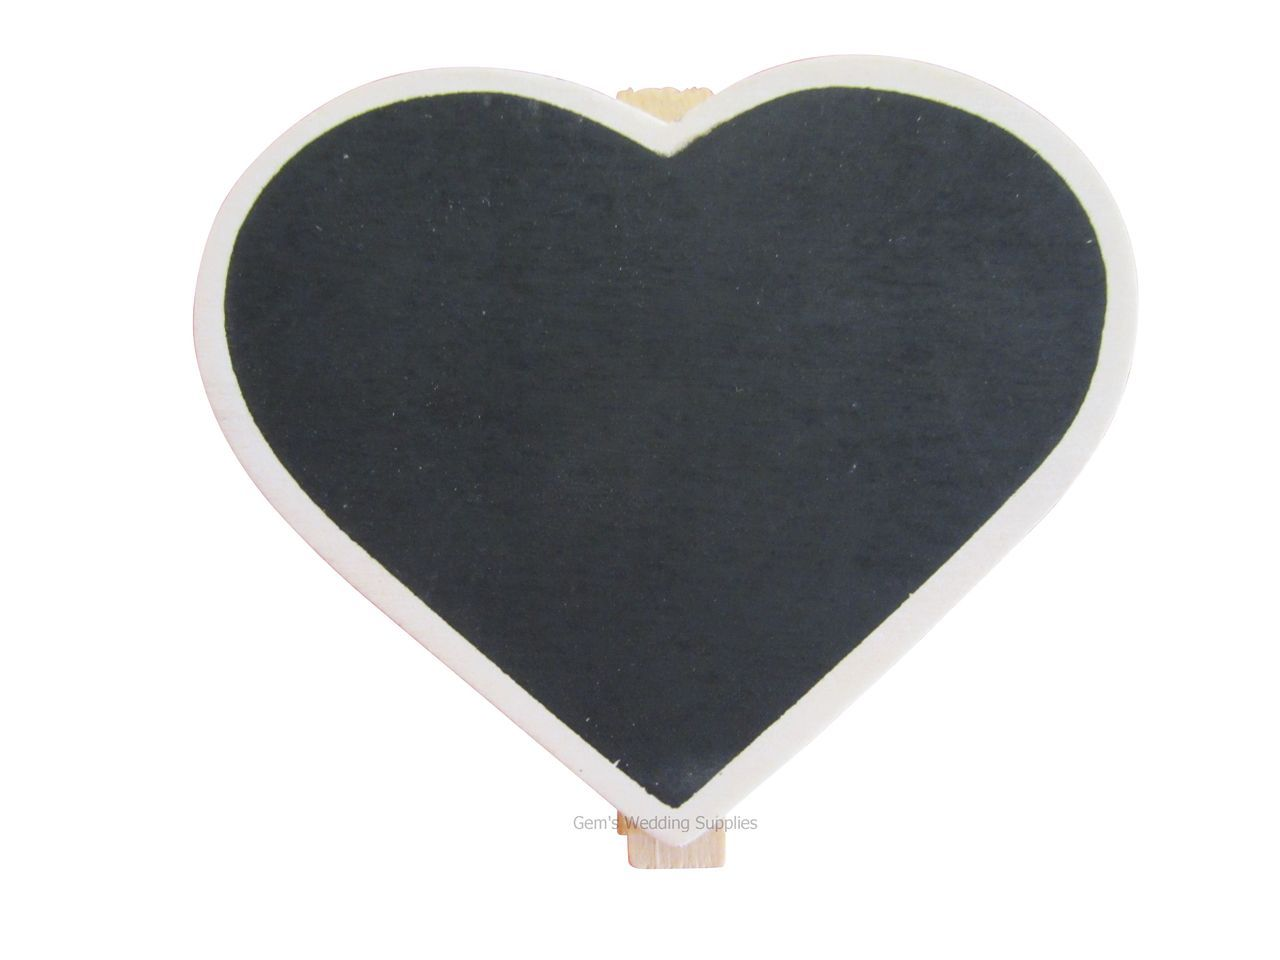 heart-blackboard-peg-1.jpg